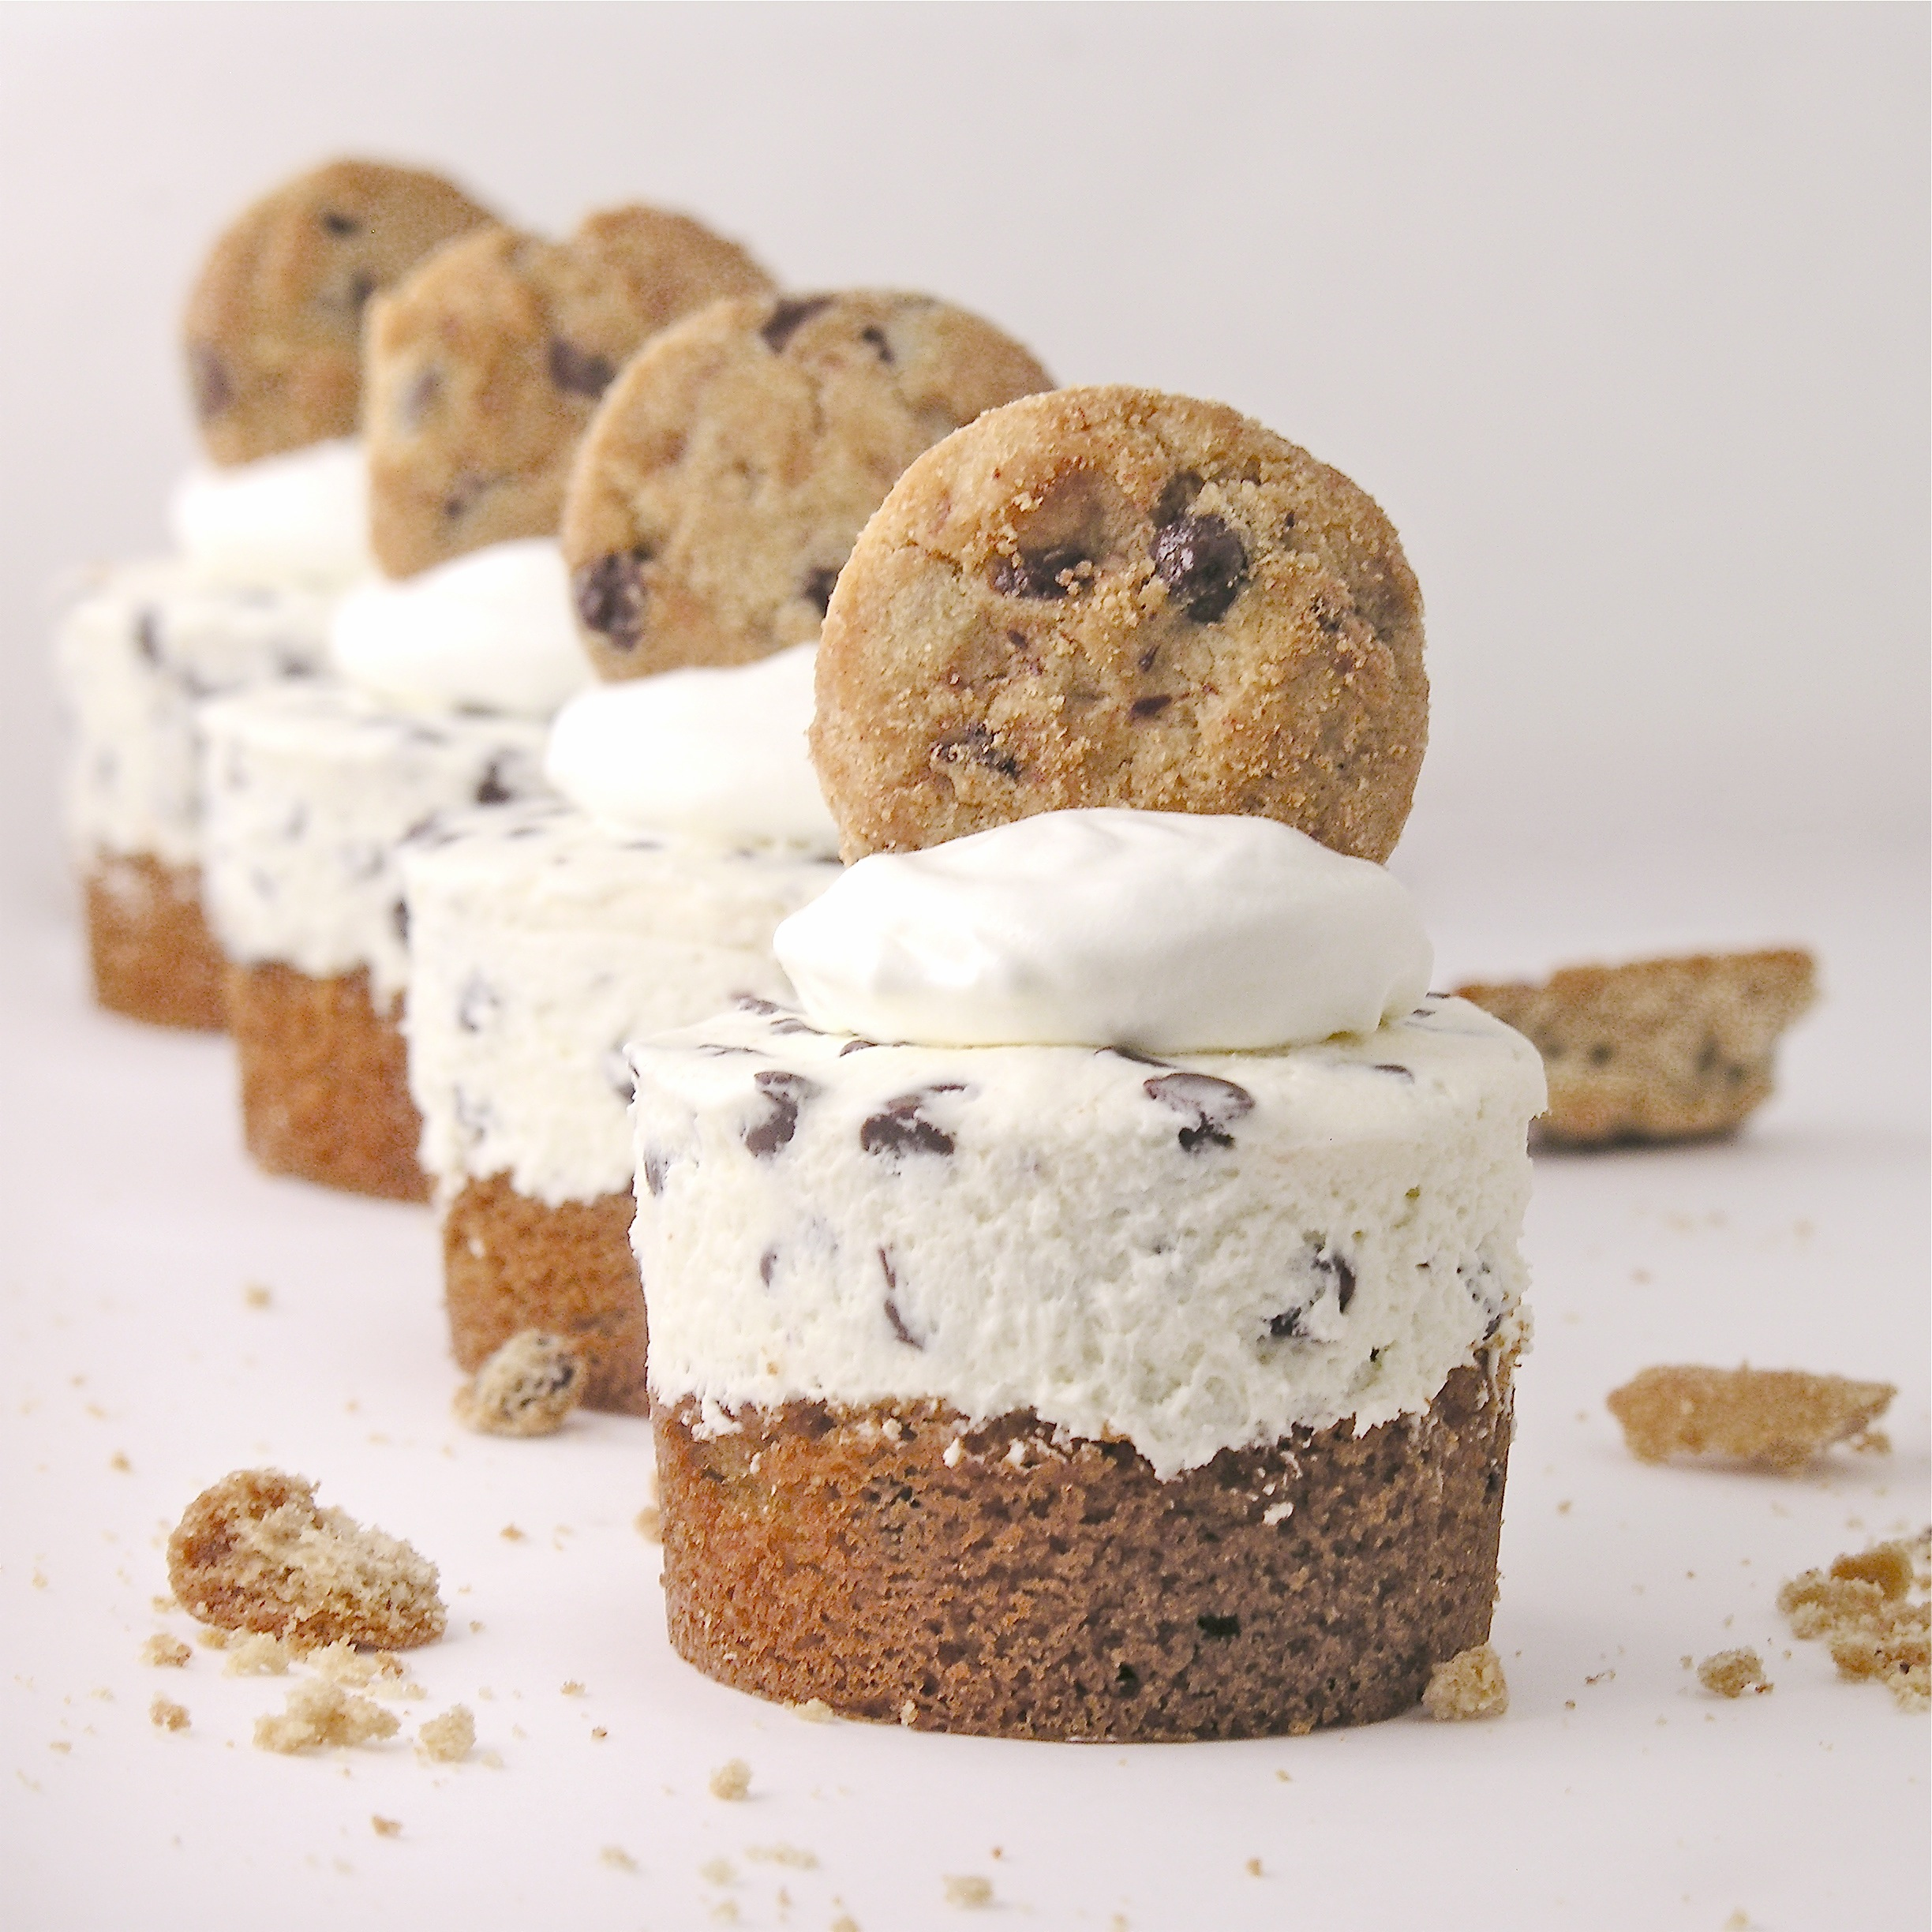 Chocolate Chip Cookie Cheesecakes | eASYbAKED